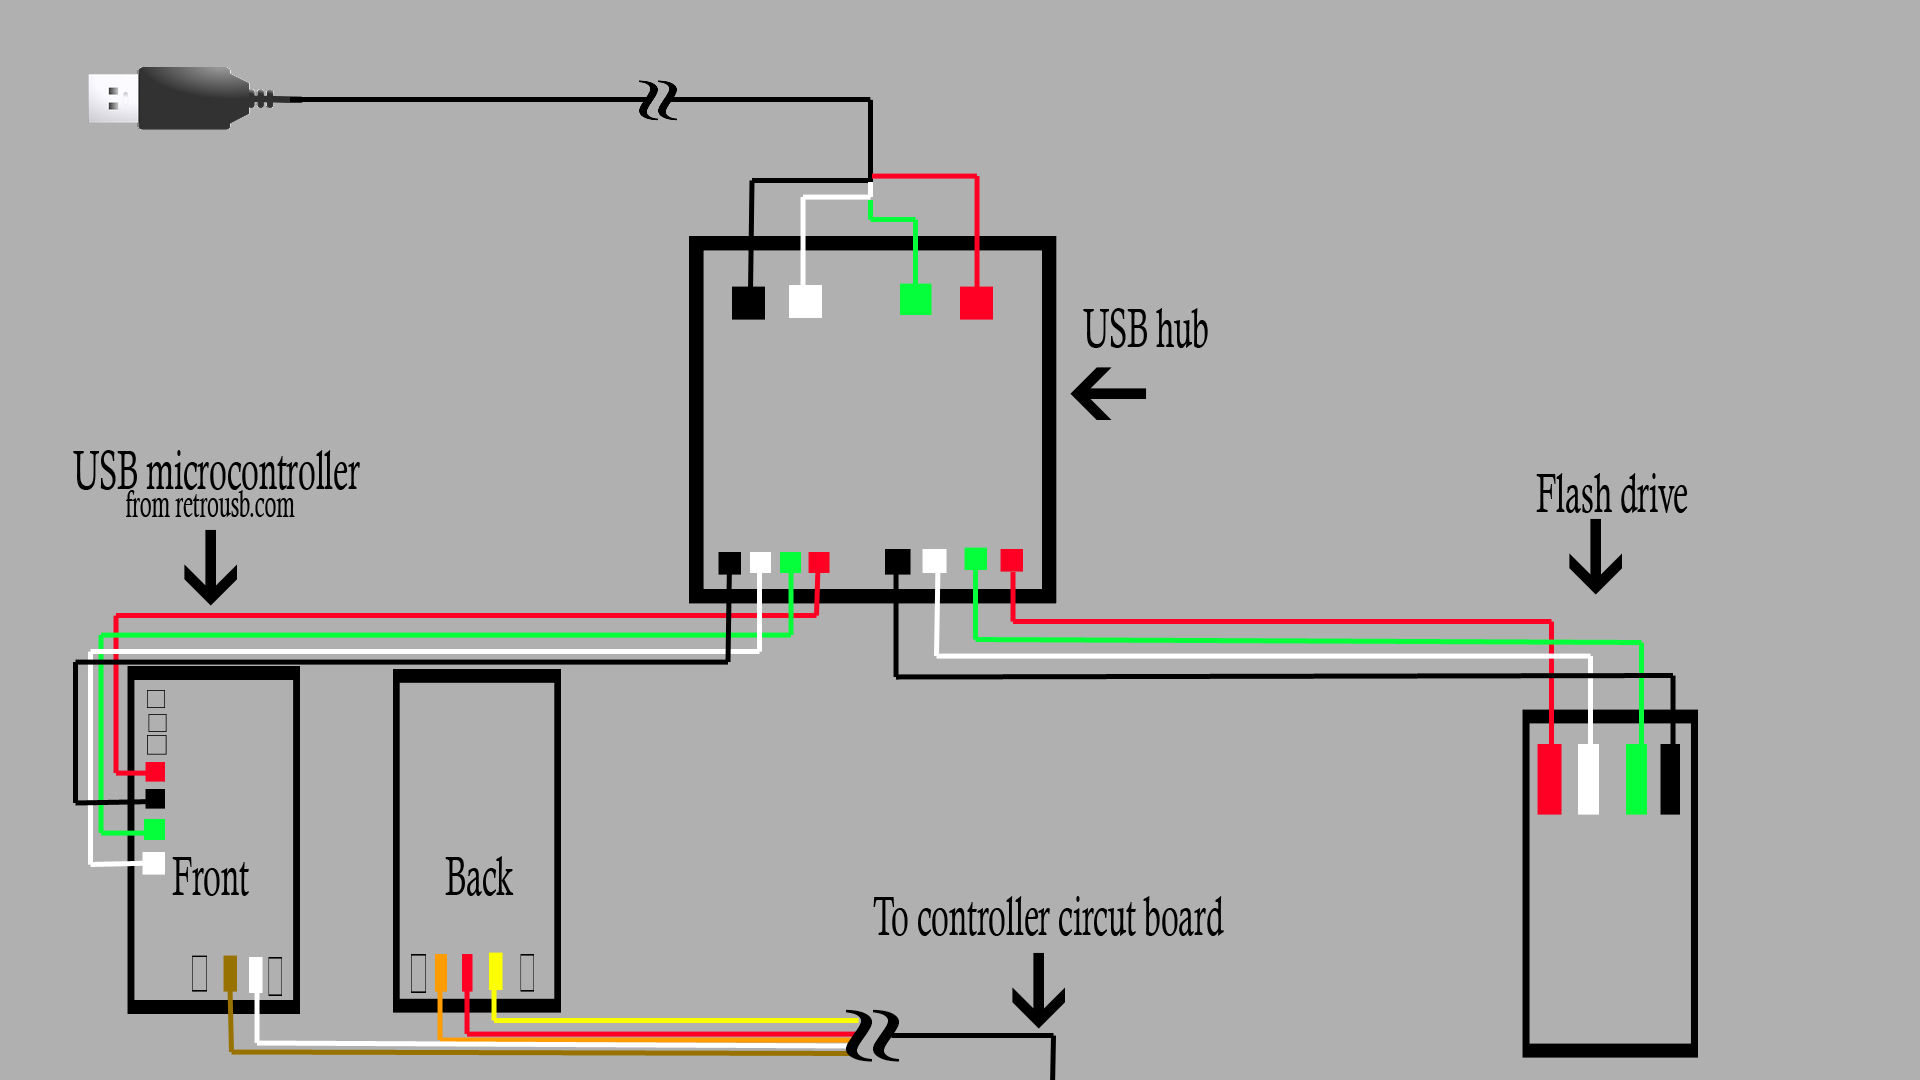 Wiring Schematic For Usb To Vga Adapter | Wiring Diagram - Vga To Usb Wiring Diagram